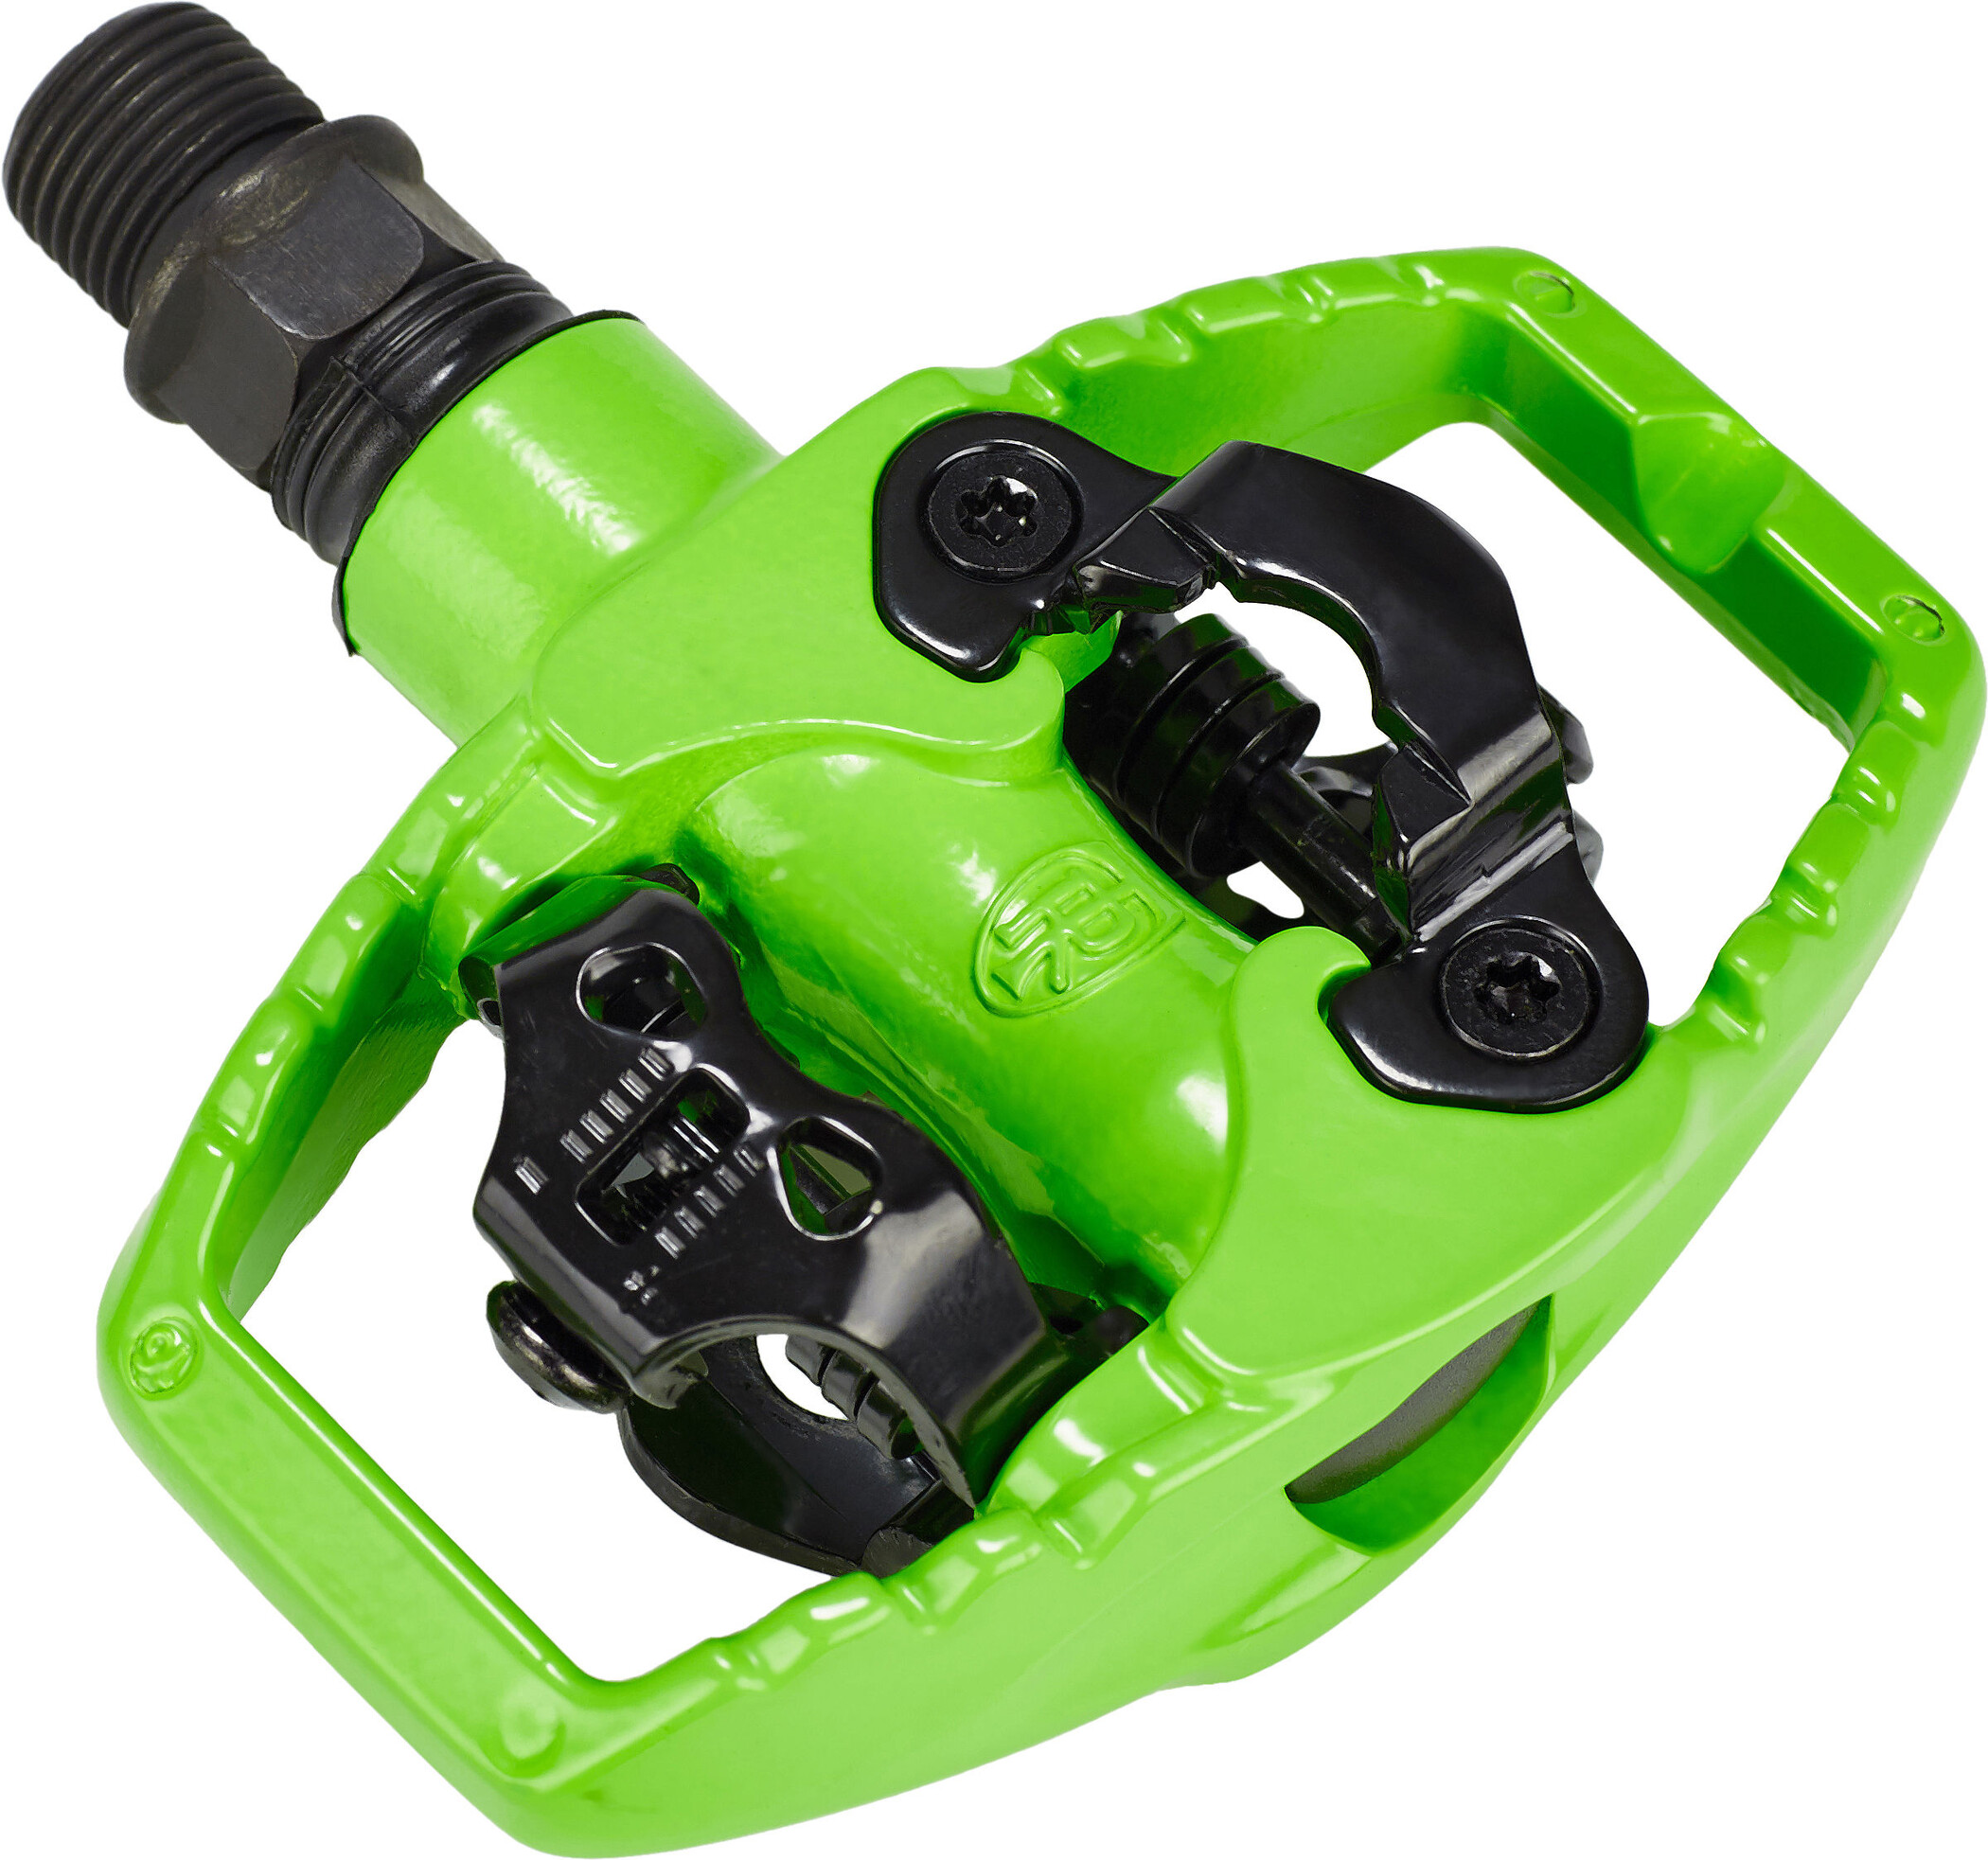 Ritchey Comp Trail Pedaler, neon green (2019) | Pedals